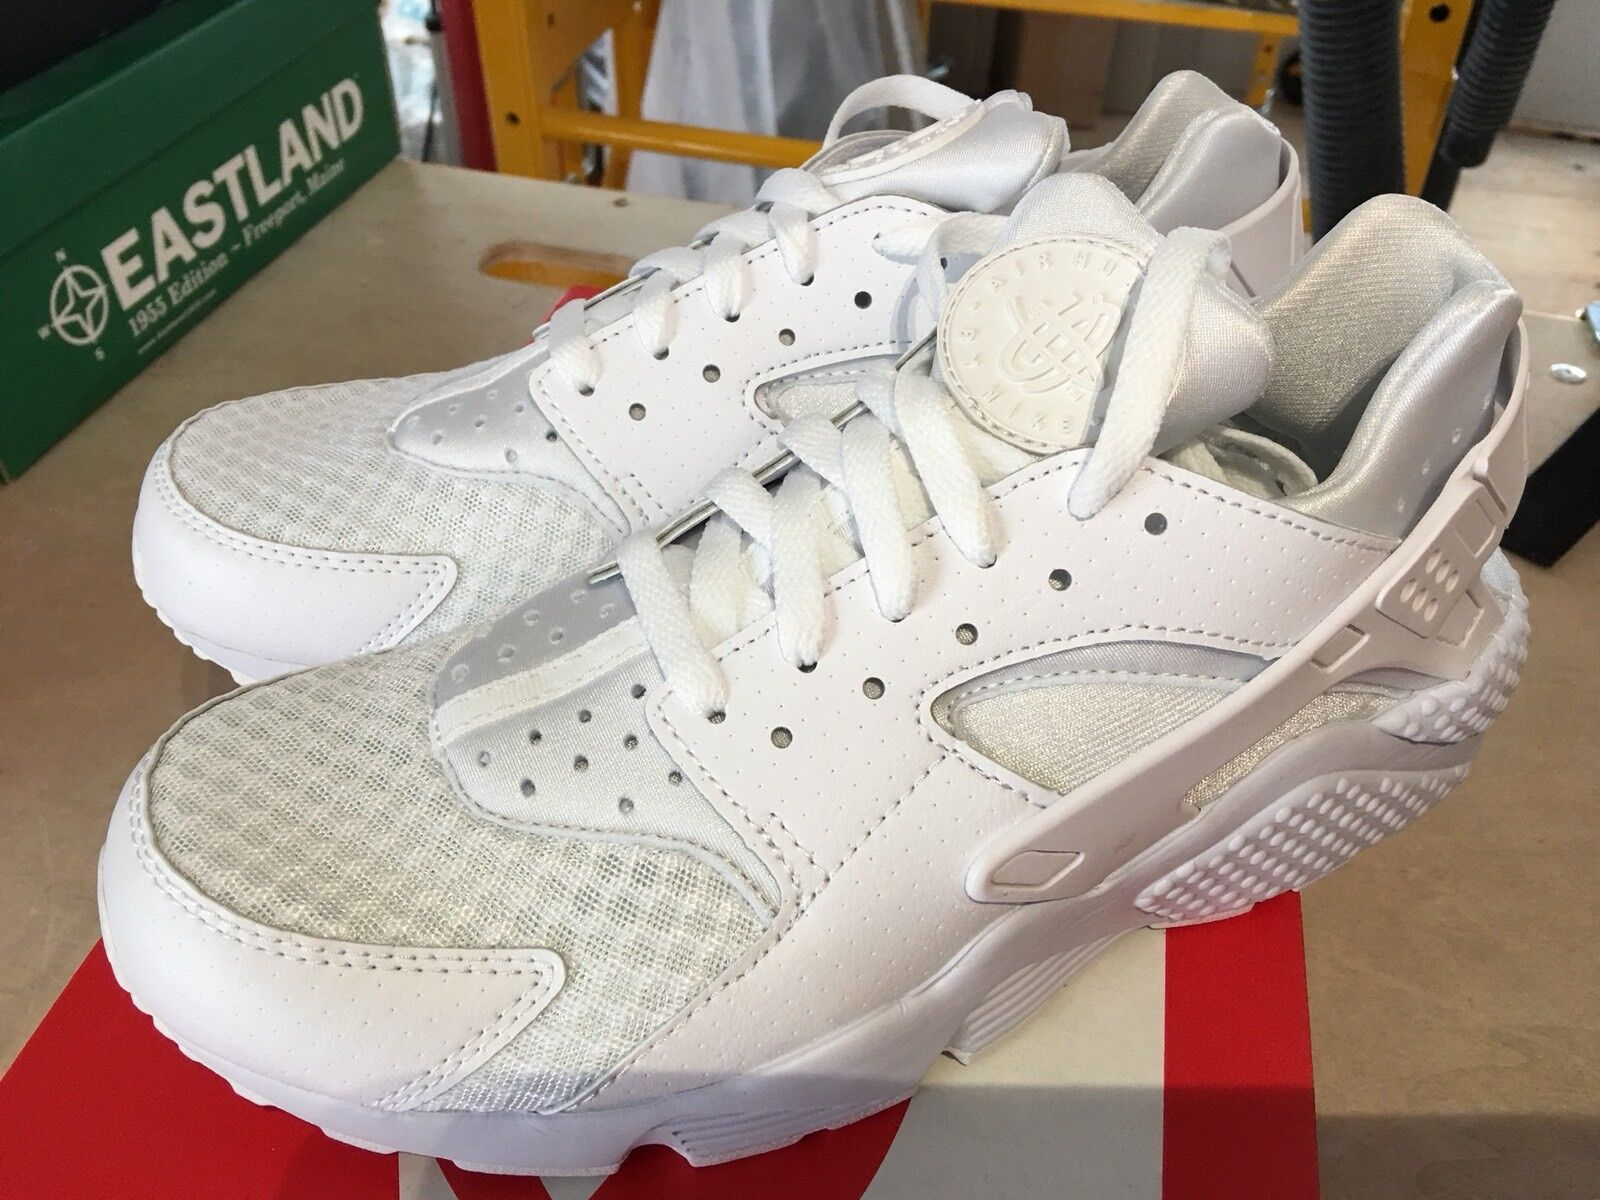 NEW Nike Huarache Pure Platinum Men's 10 US Fits 9 US FREE Shipping in USA